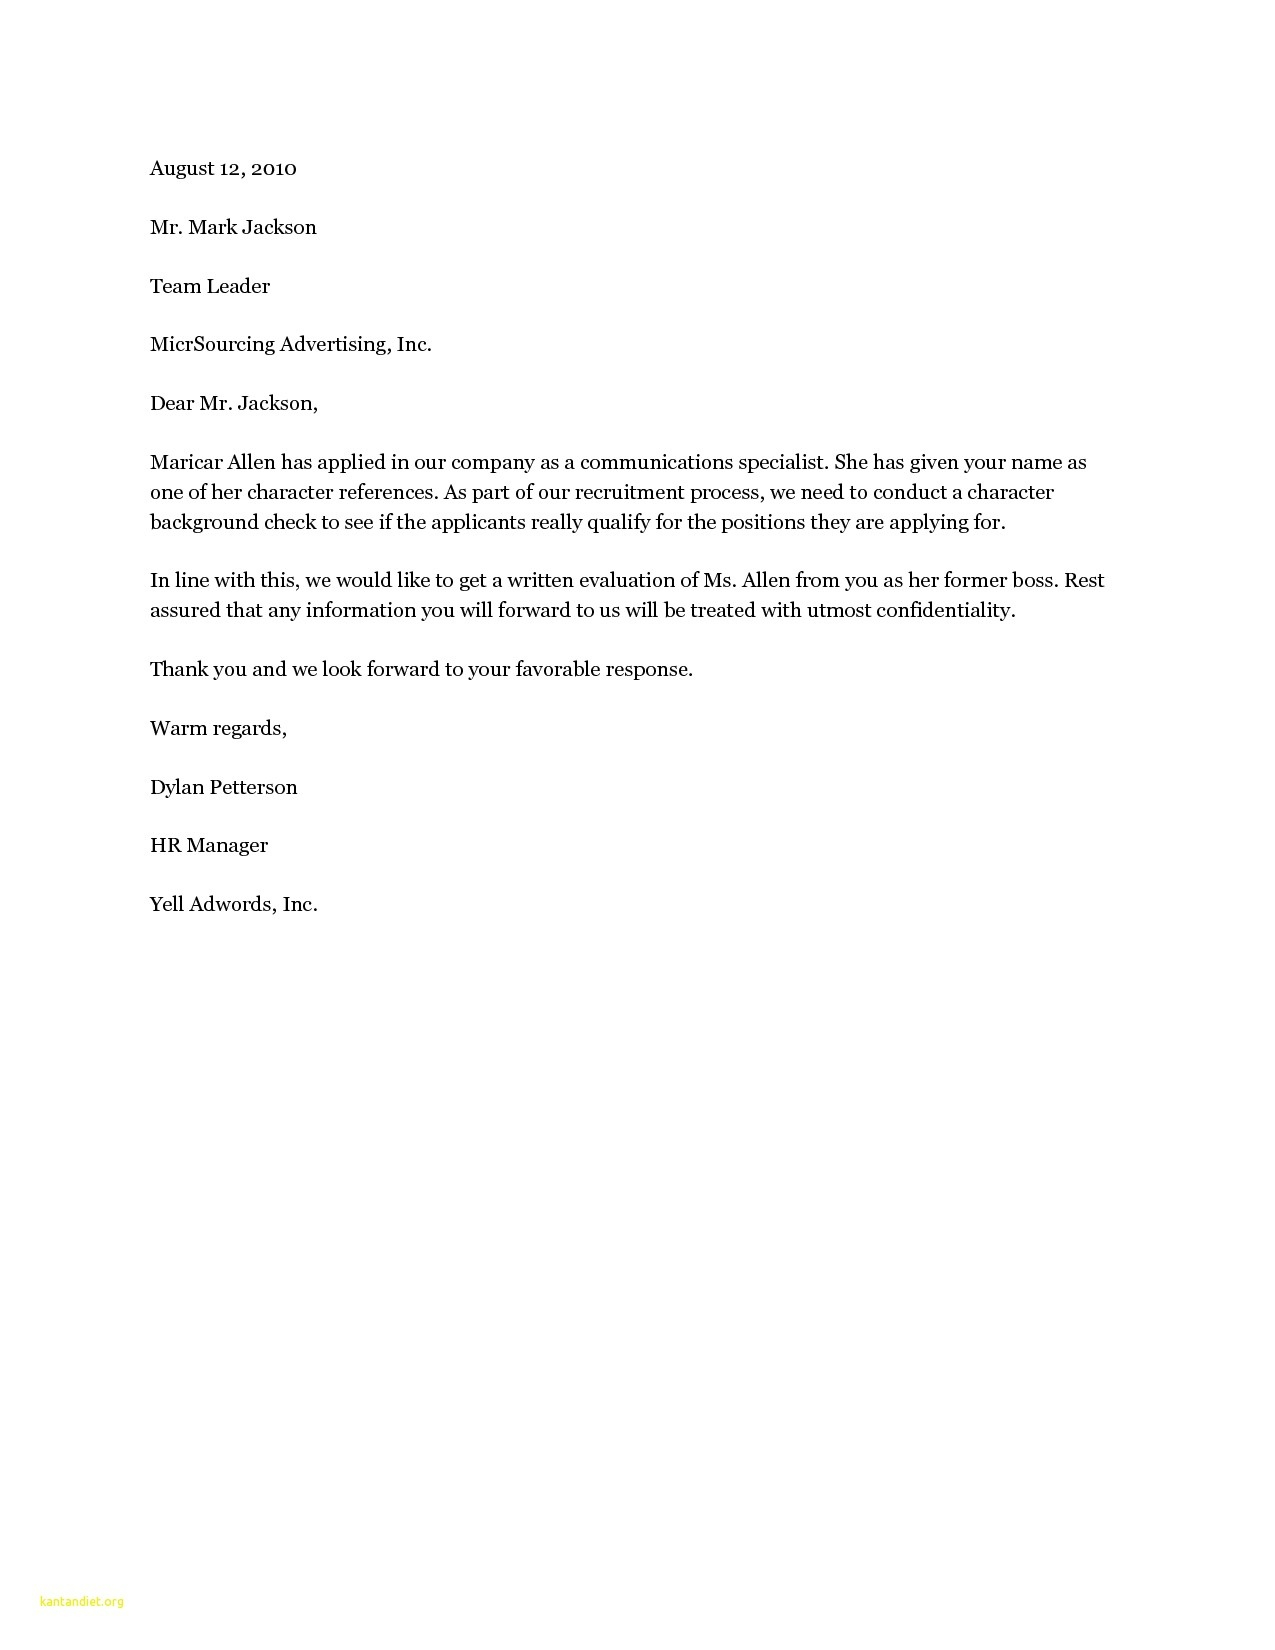 Sample Hire Letter Template - Dear Hiring Manager Cover Letter Sample 19 Cover Letter Template